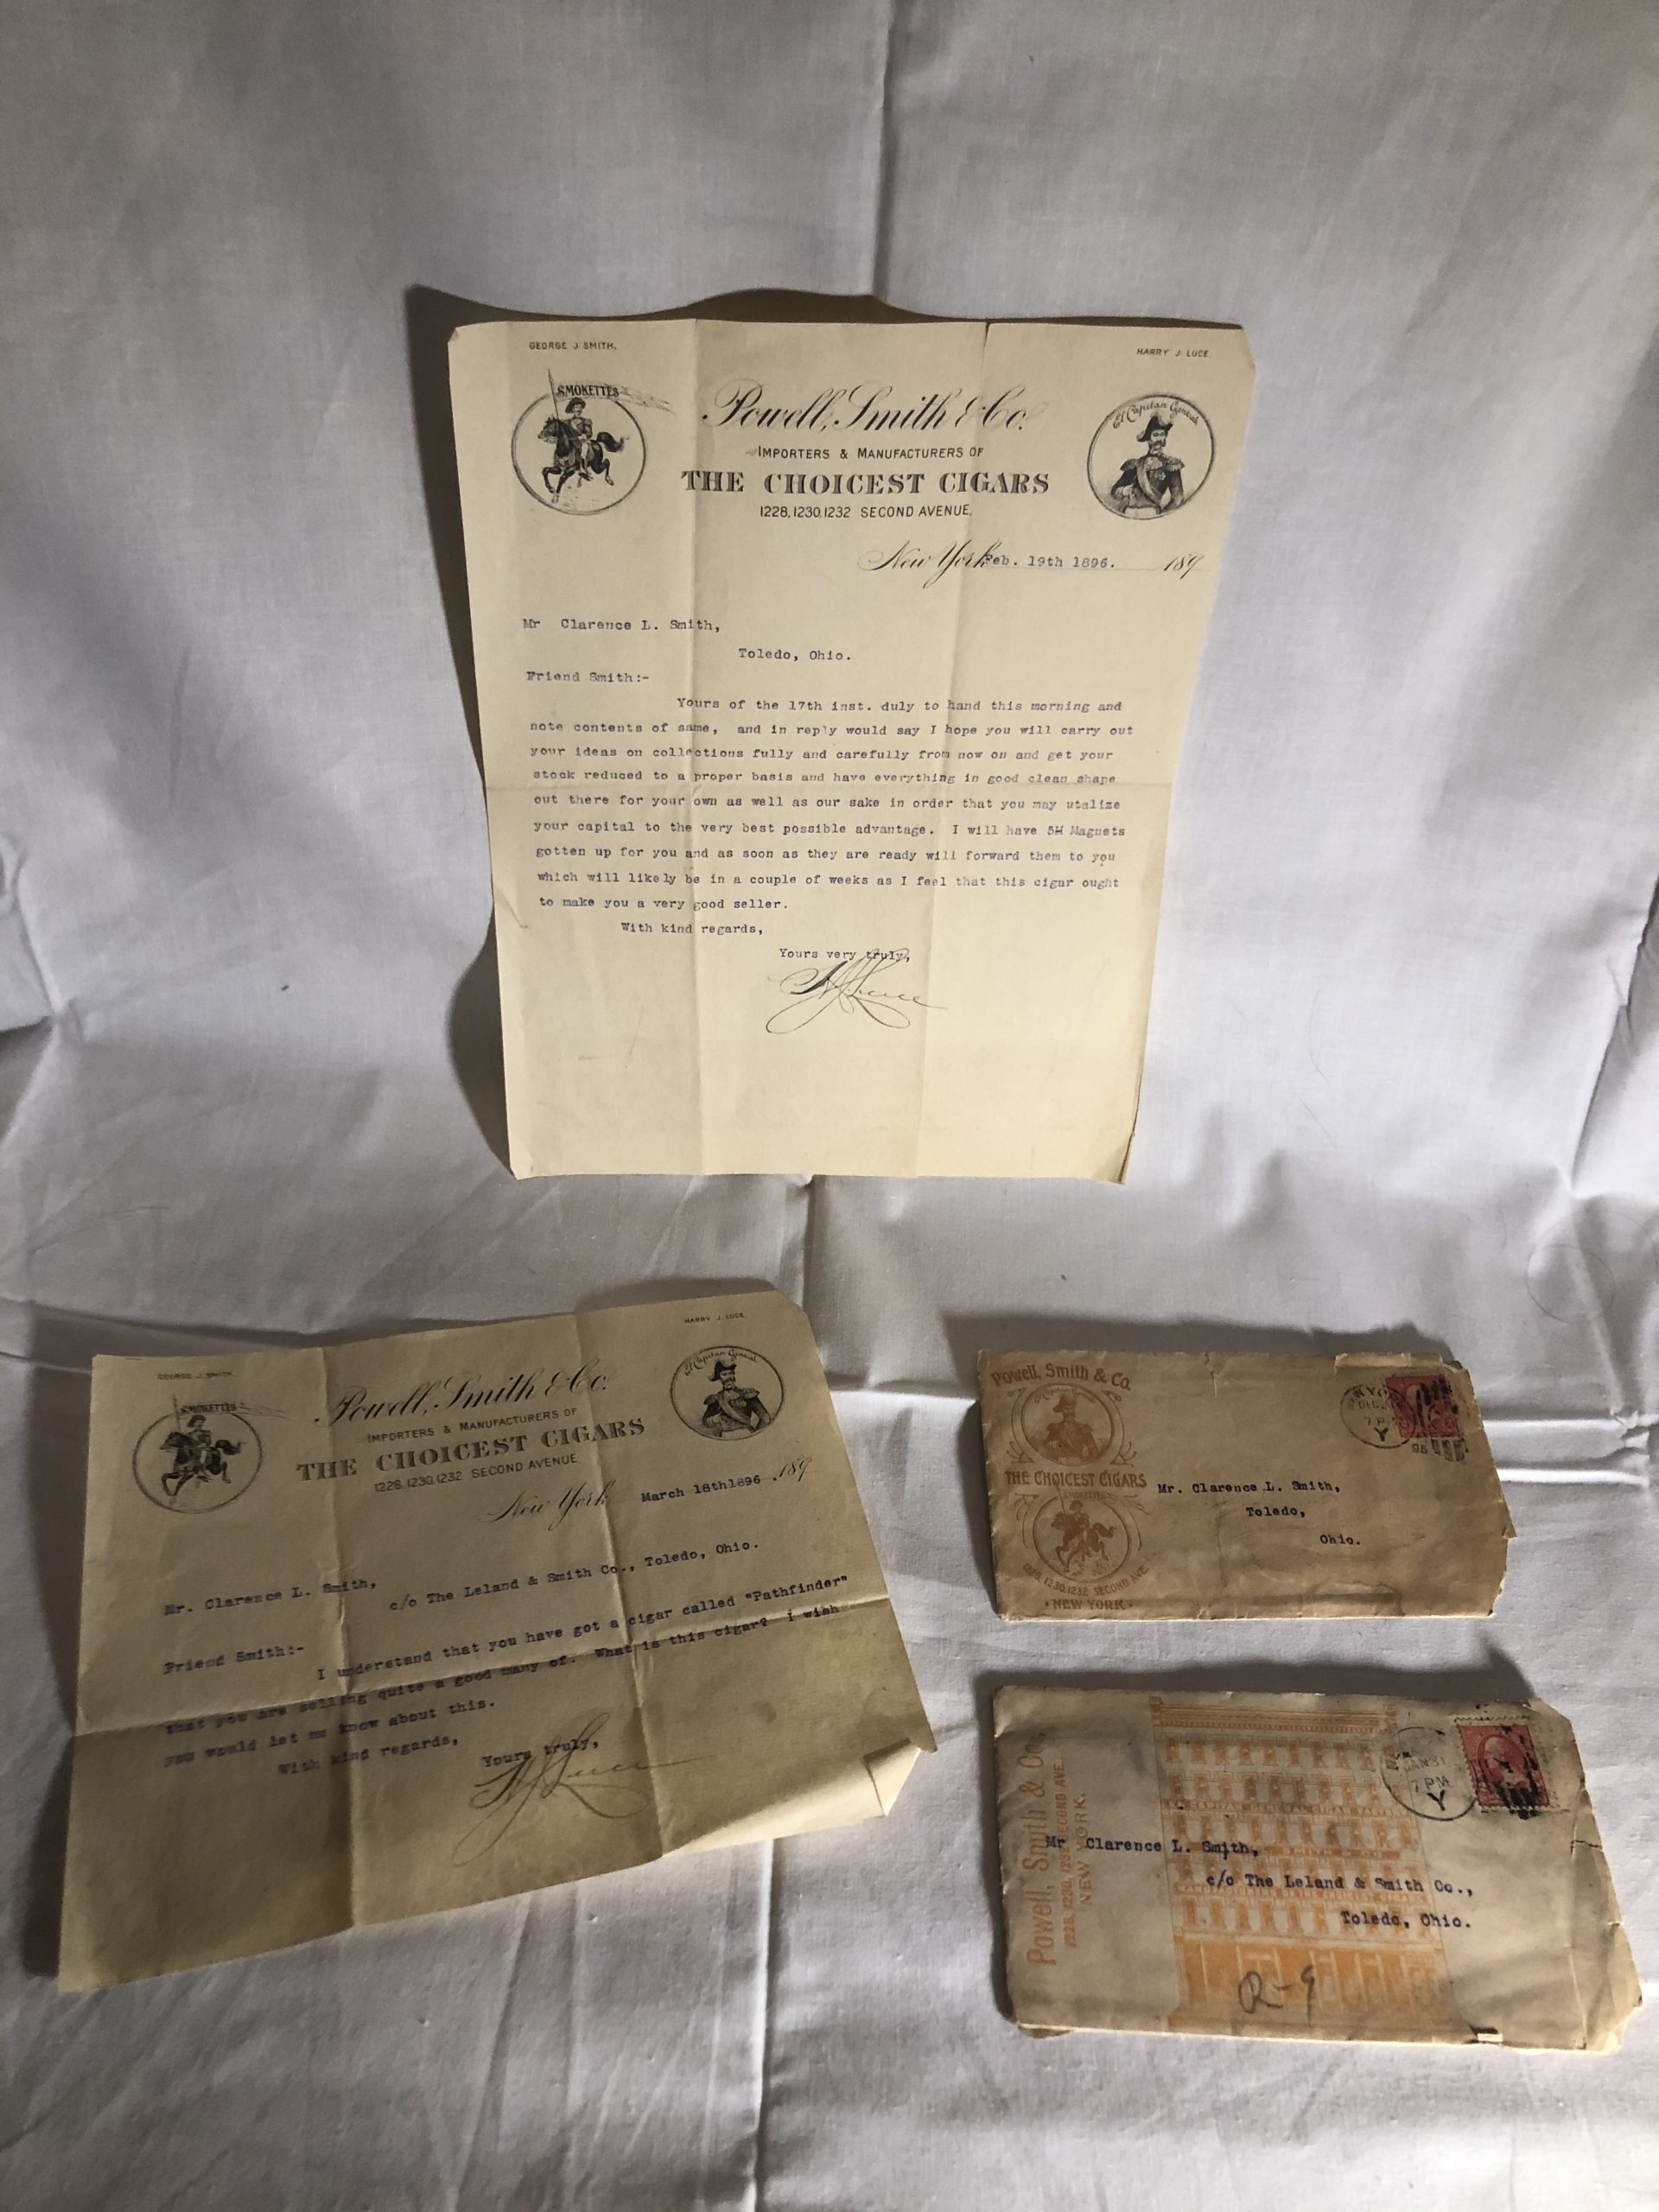 Old, Antique Powell, Smith & Co. Cigar Company Stationary Envelopes and Paper Letter, Postmarked 2¢ Stamps